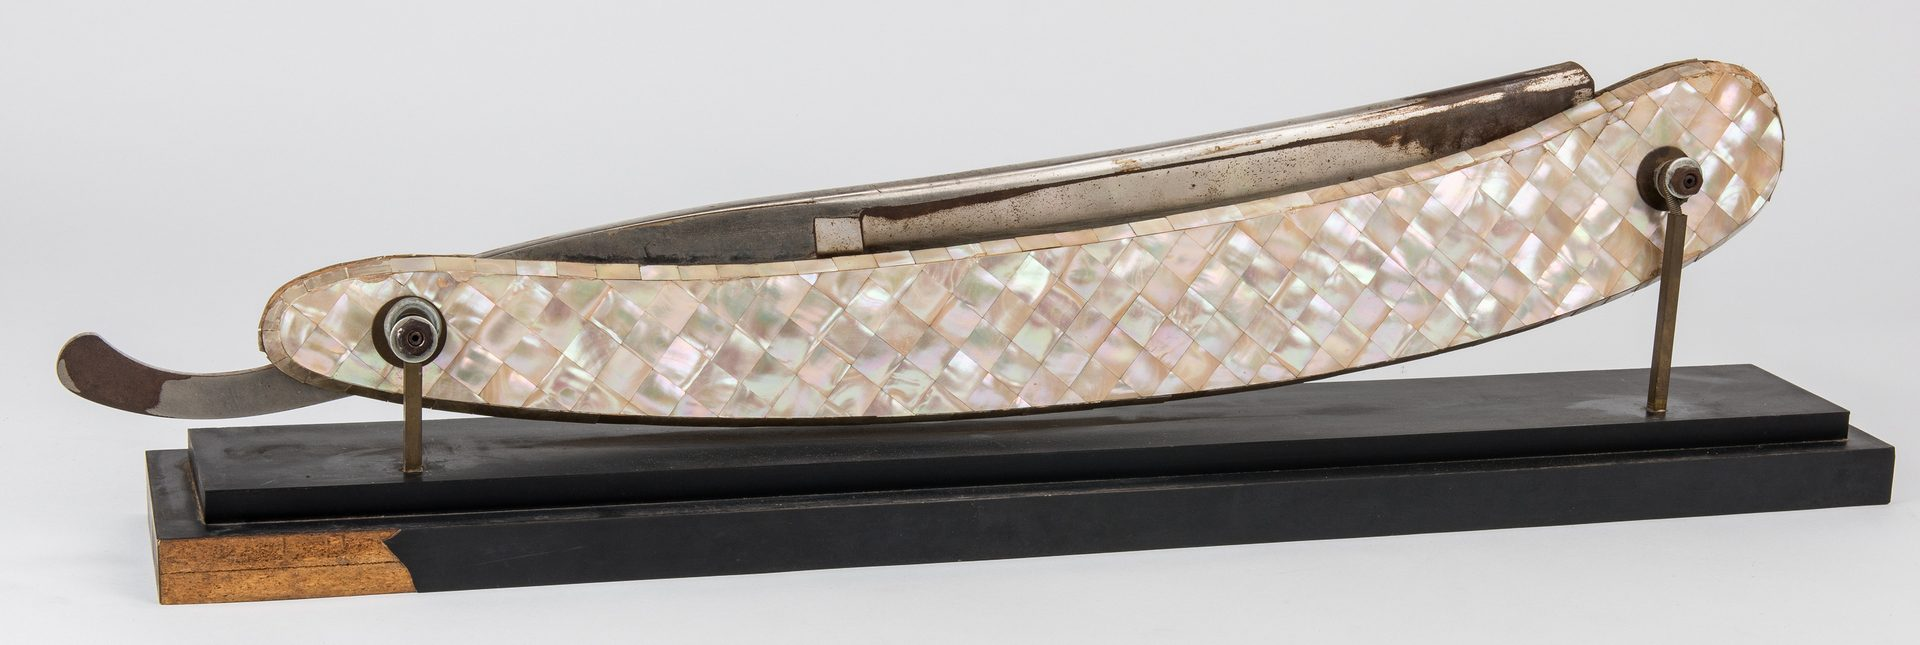 Lot 797: Barber Straight Razor Display or Advertising Sign